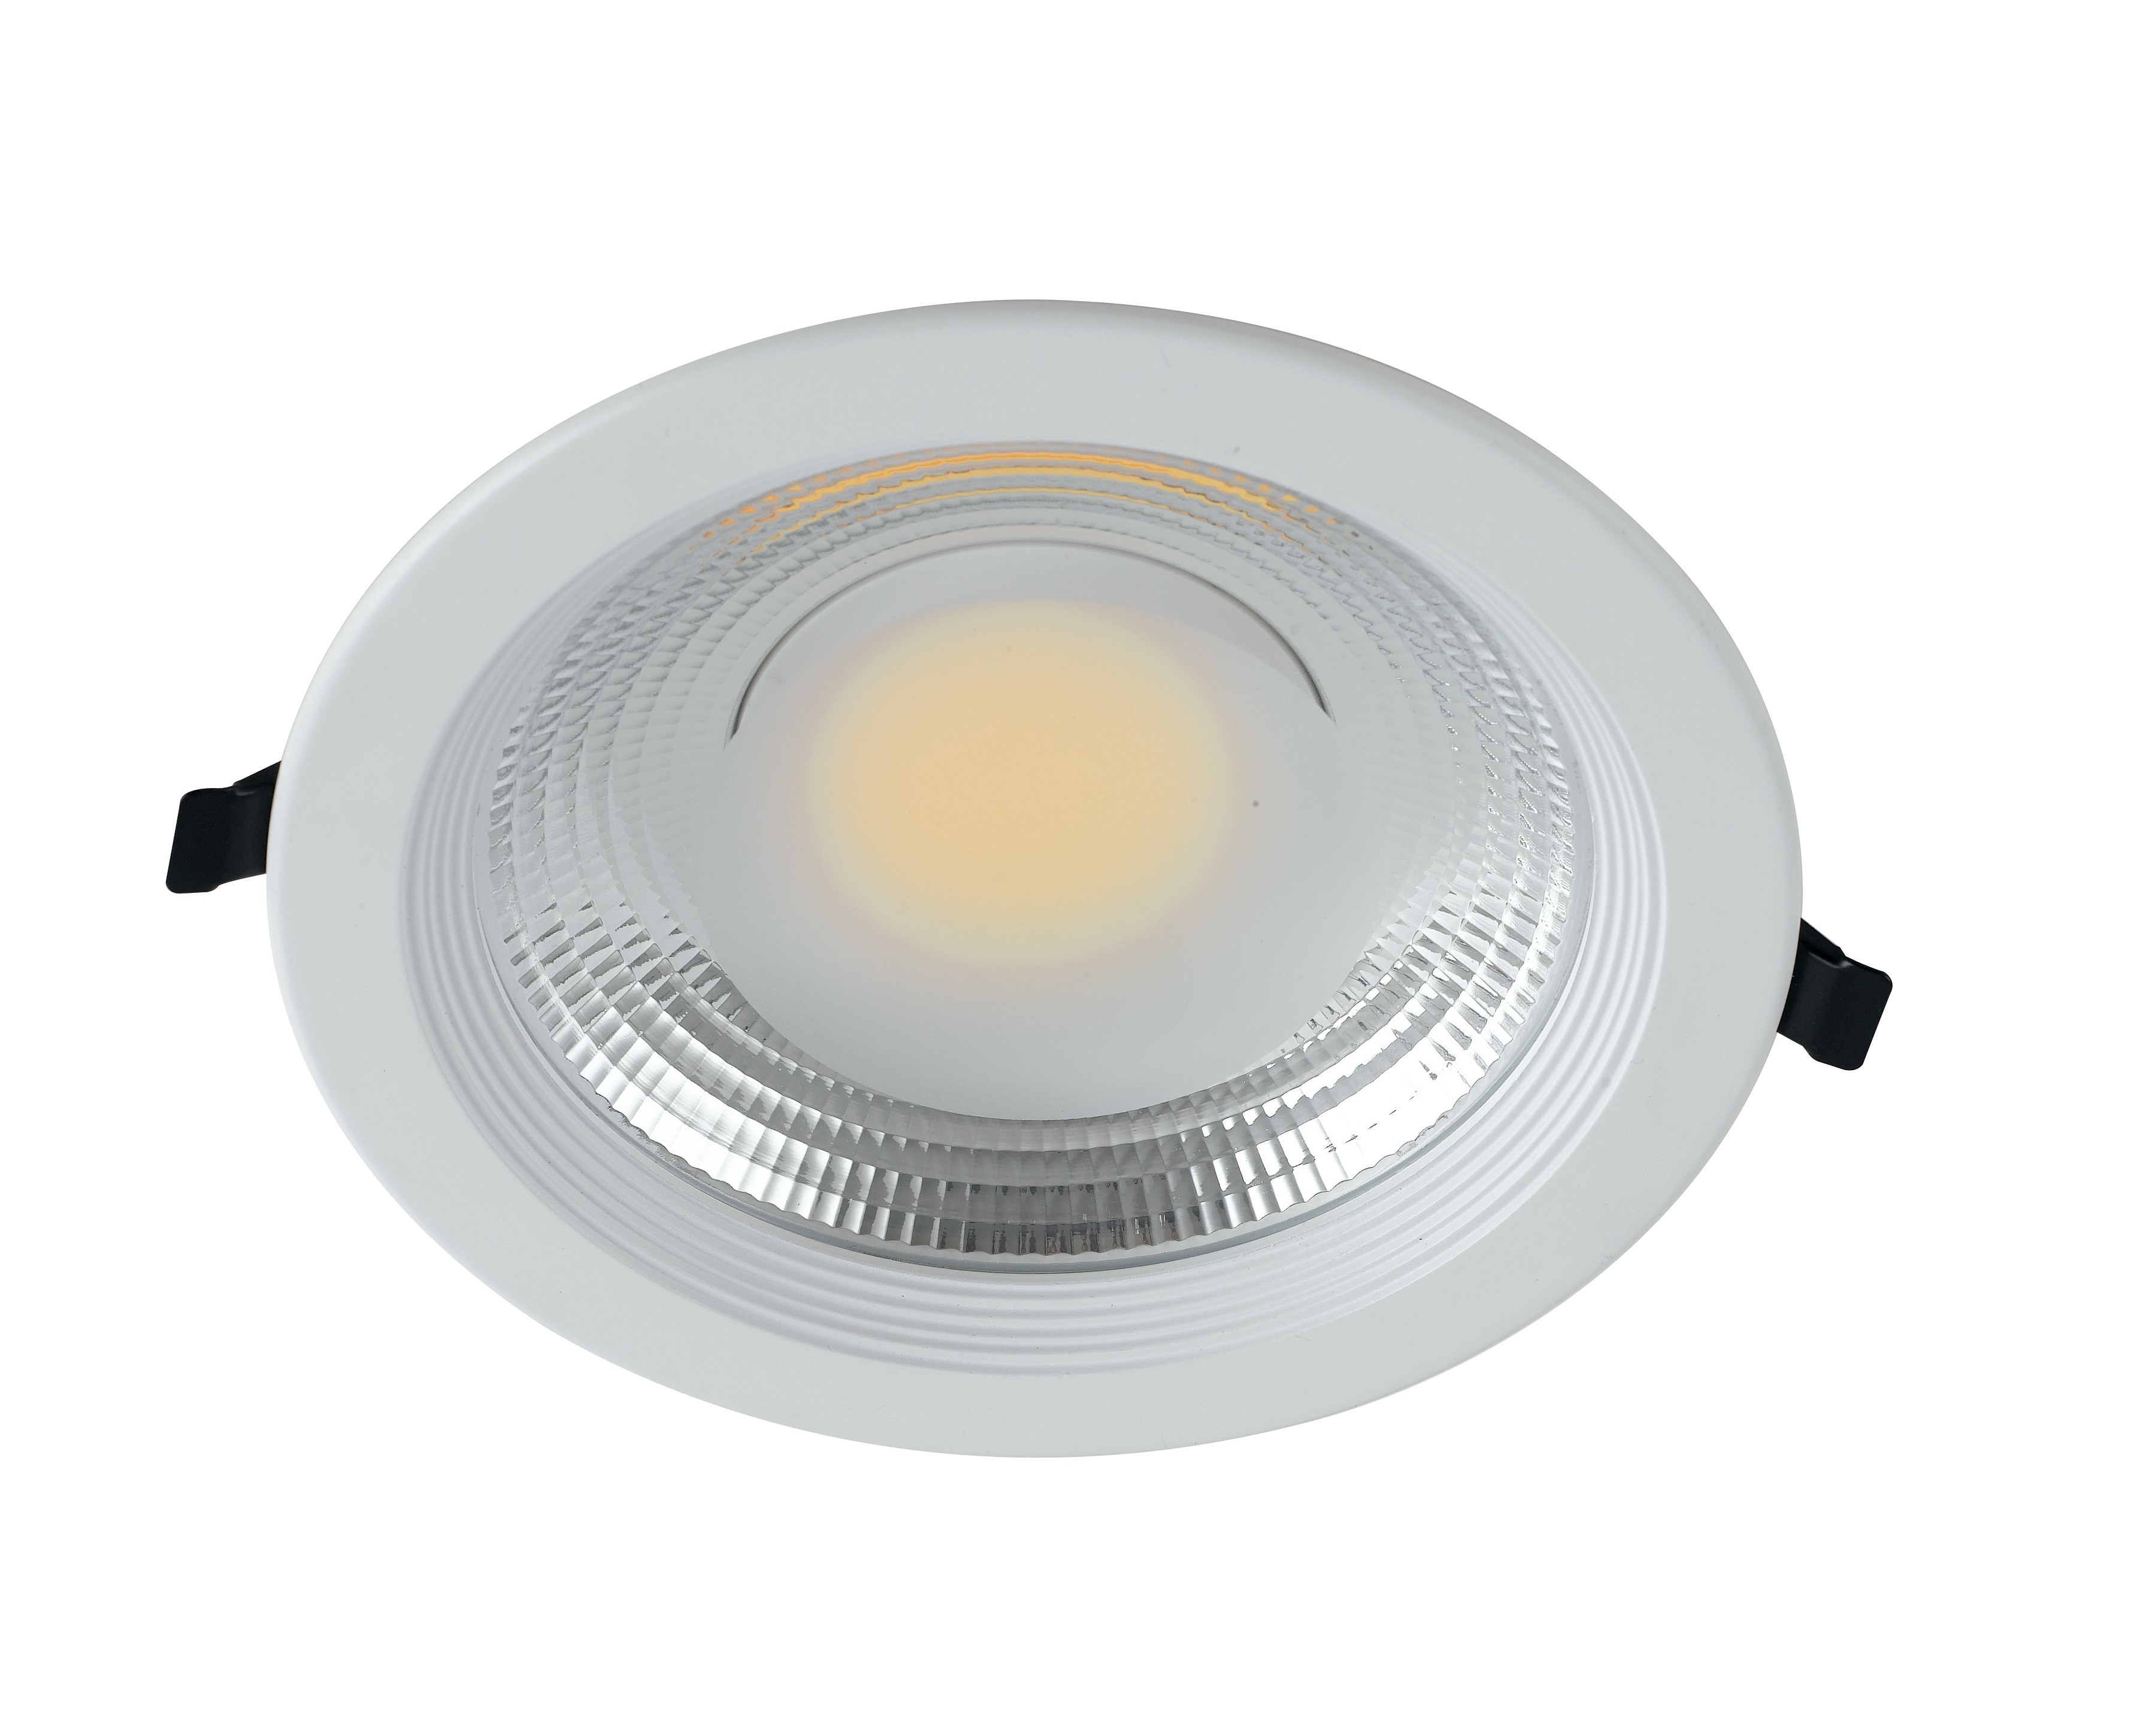 Plafoniera Led Incasso Tonda : Inc lyra 20c 8031434871210 fan europe lighting faretto a incasso